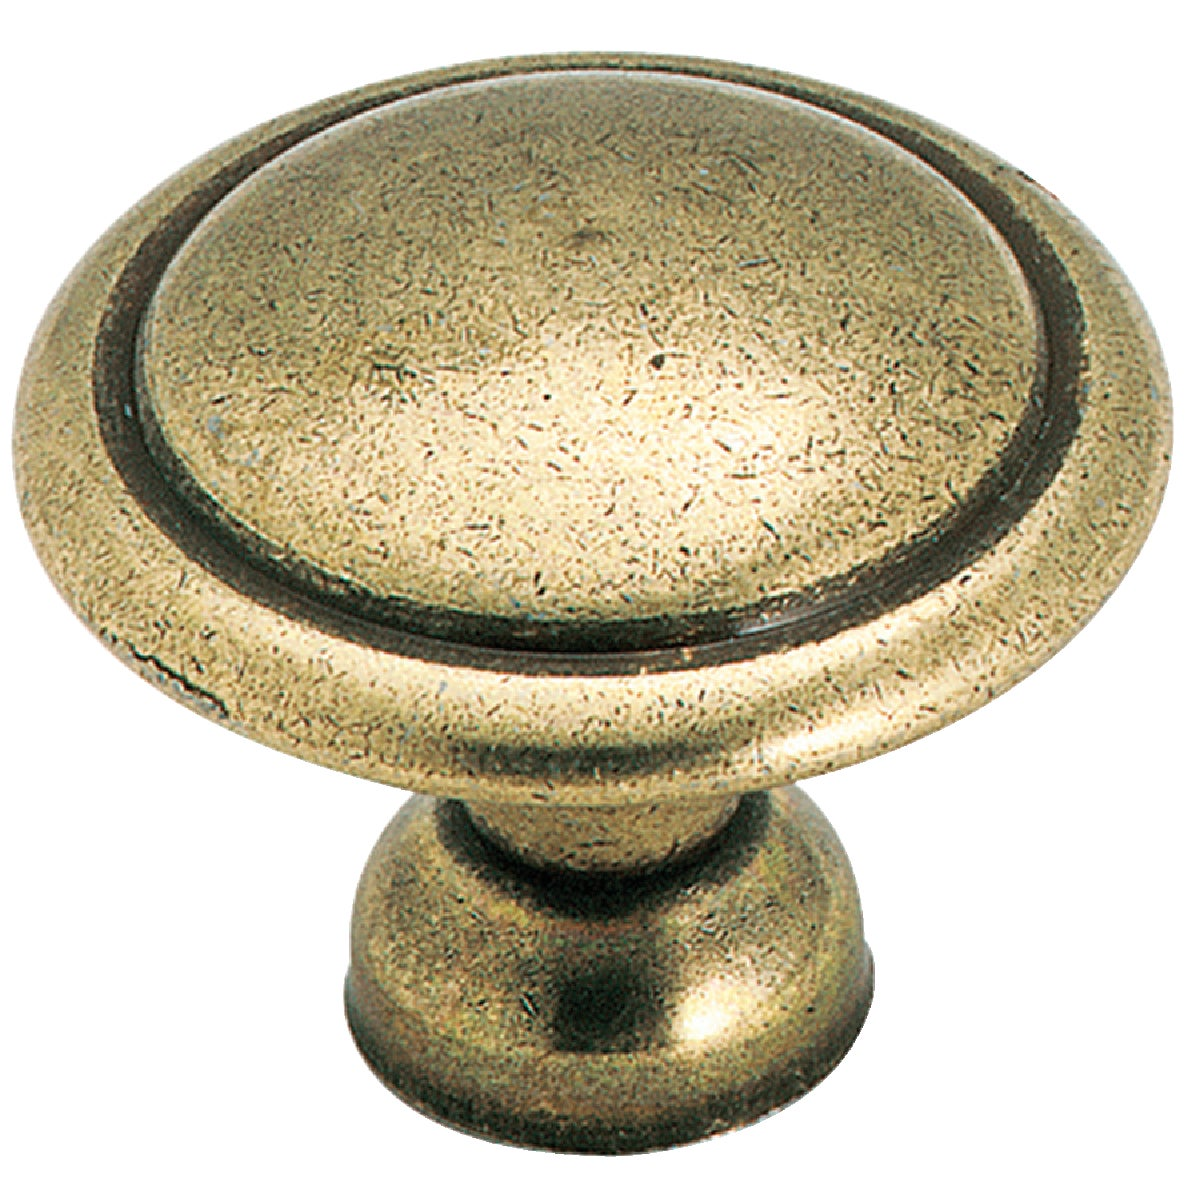 Amerock 1-3/8 In. Round Antique Brass With Decorative Circle Traditional Knob